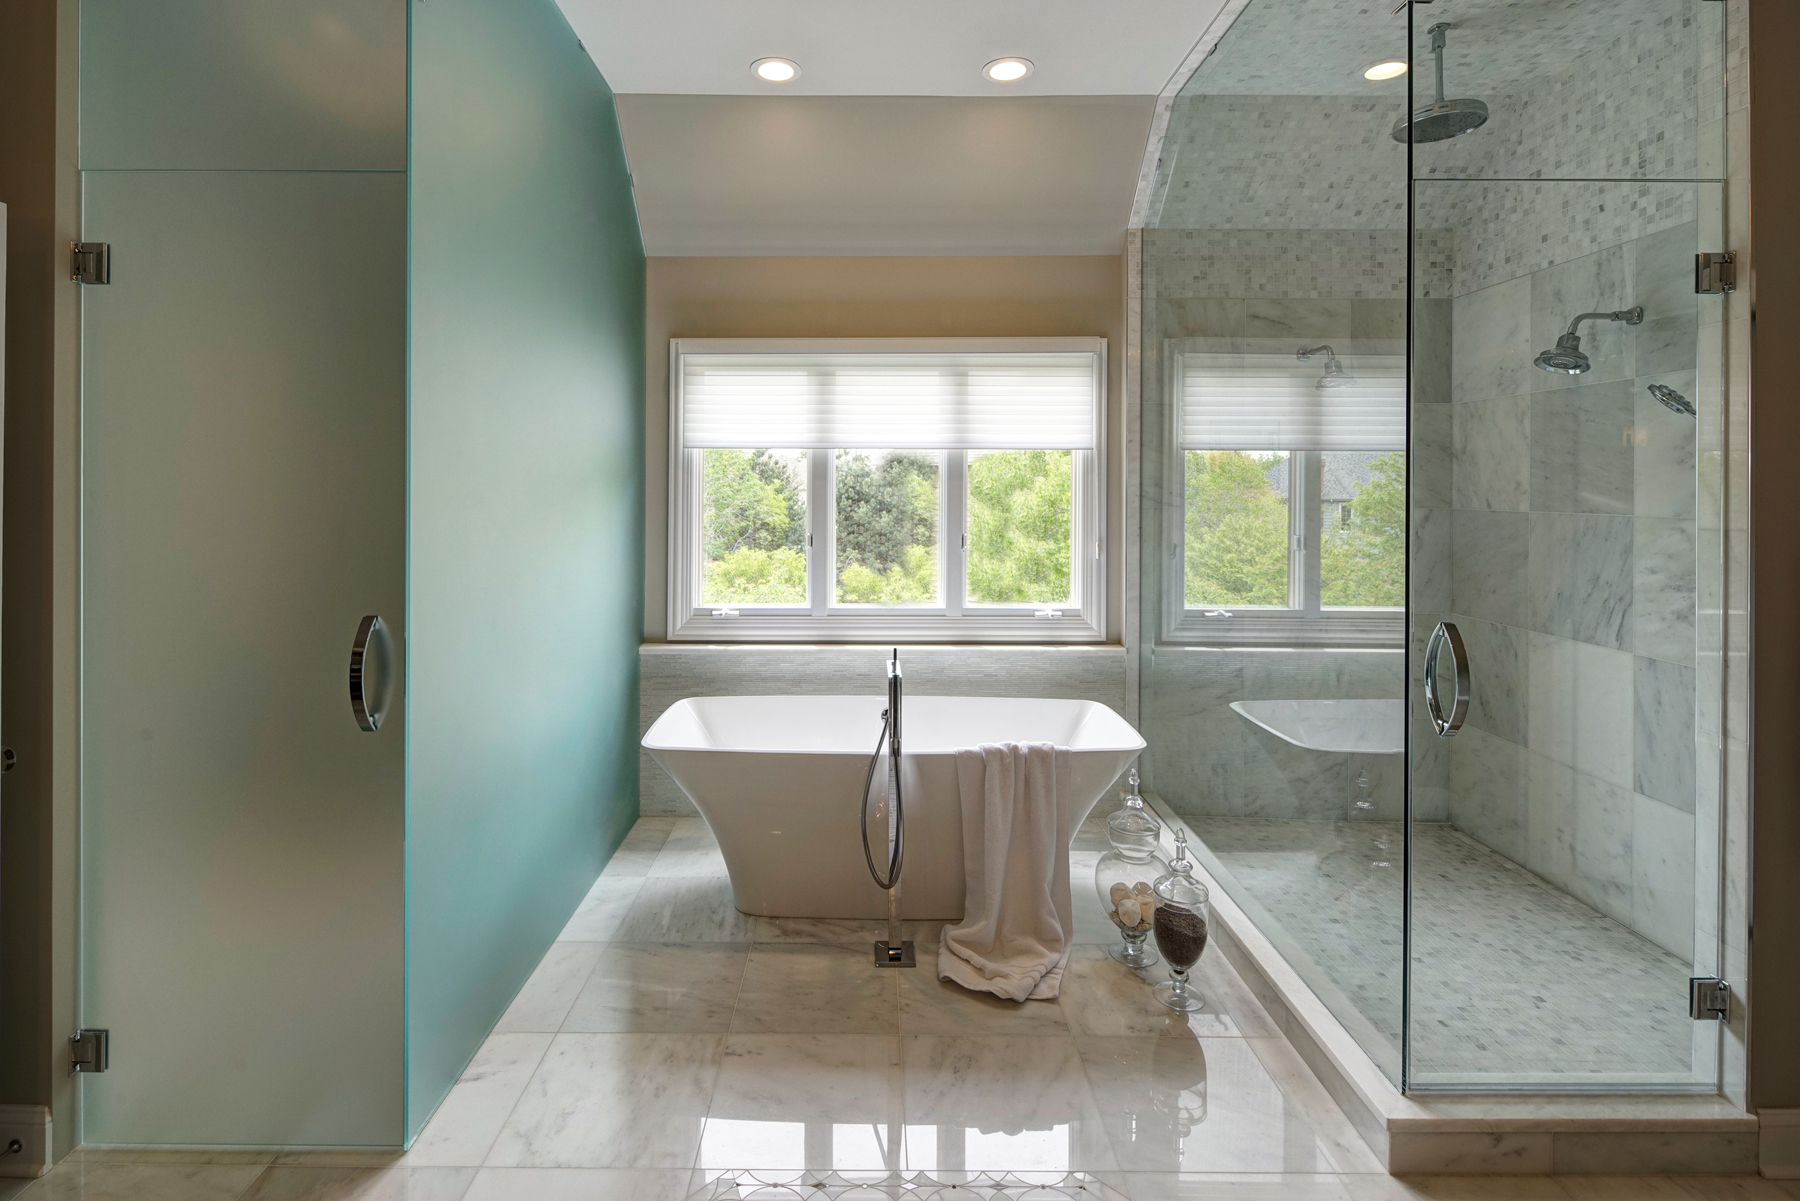 1434045626-stylish-oasis-bathroom-design-naperville-il-1-wo